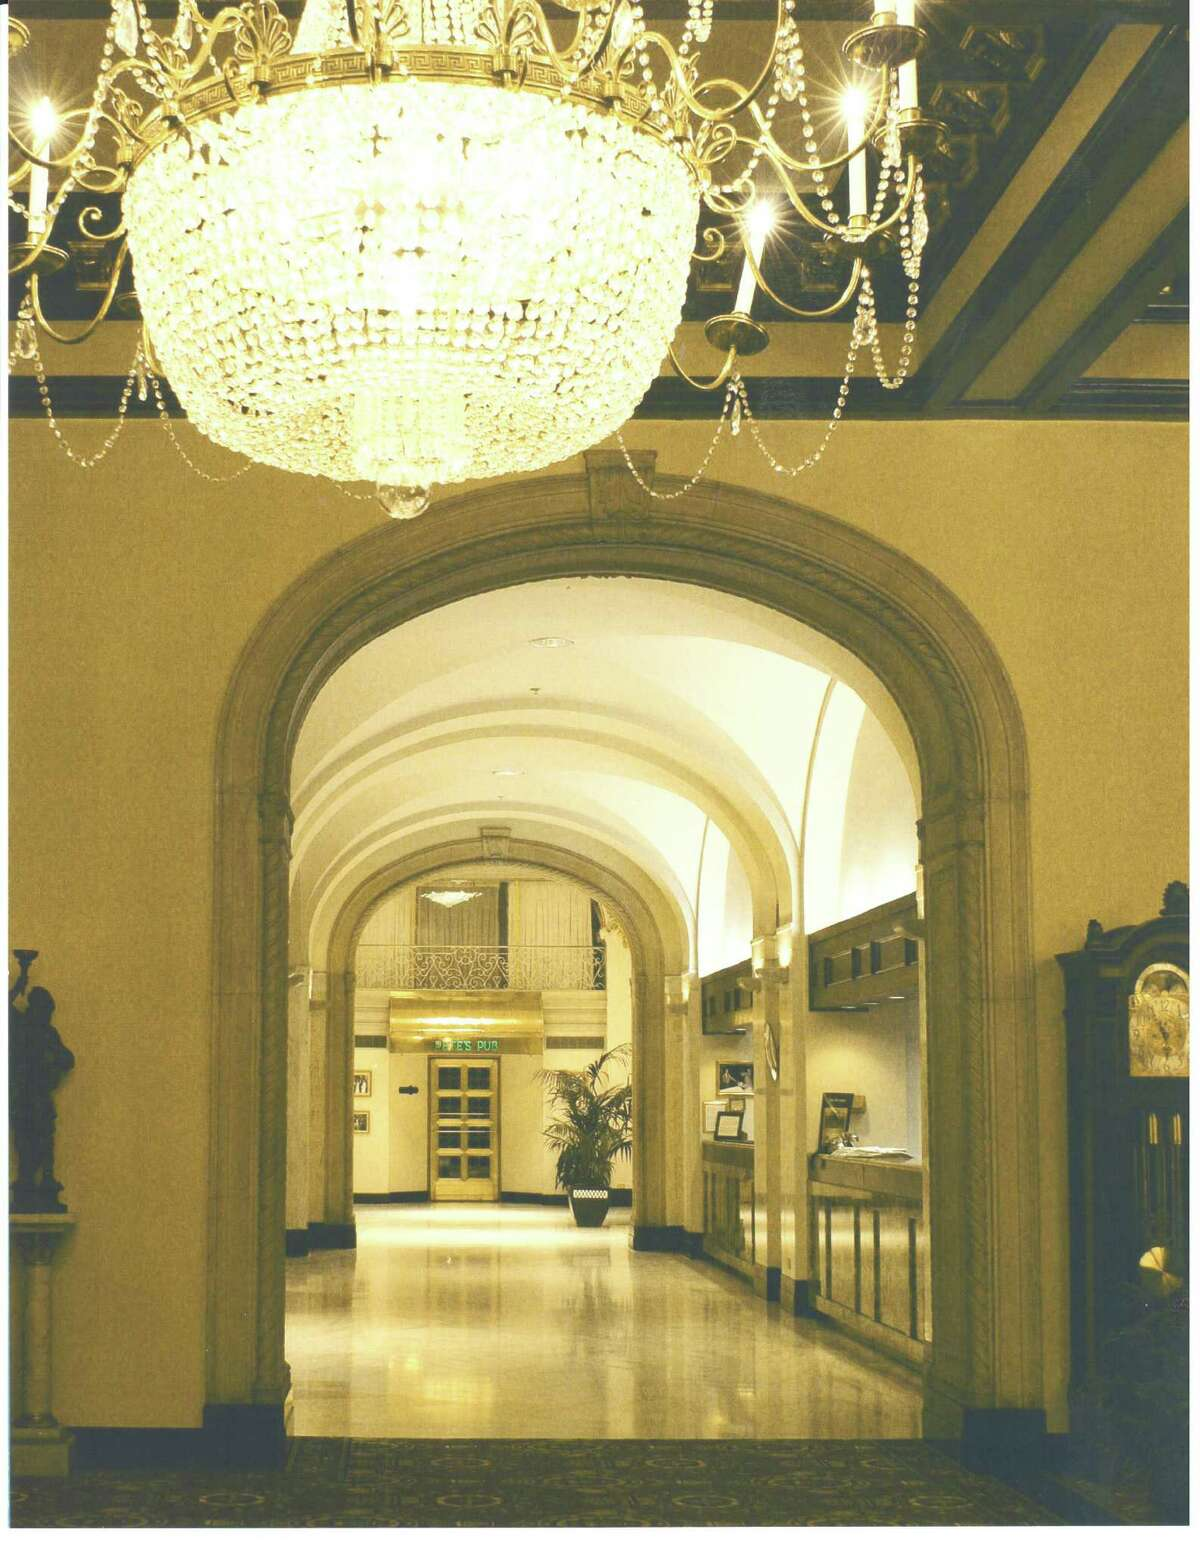 The hotel's opulent lobby and front desk.